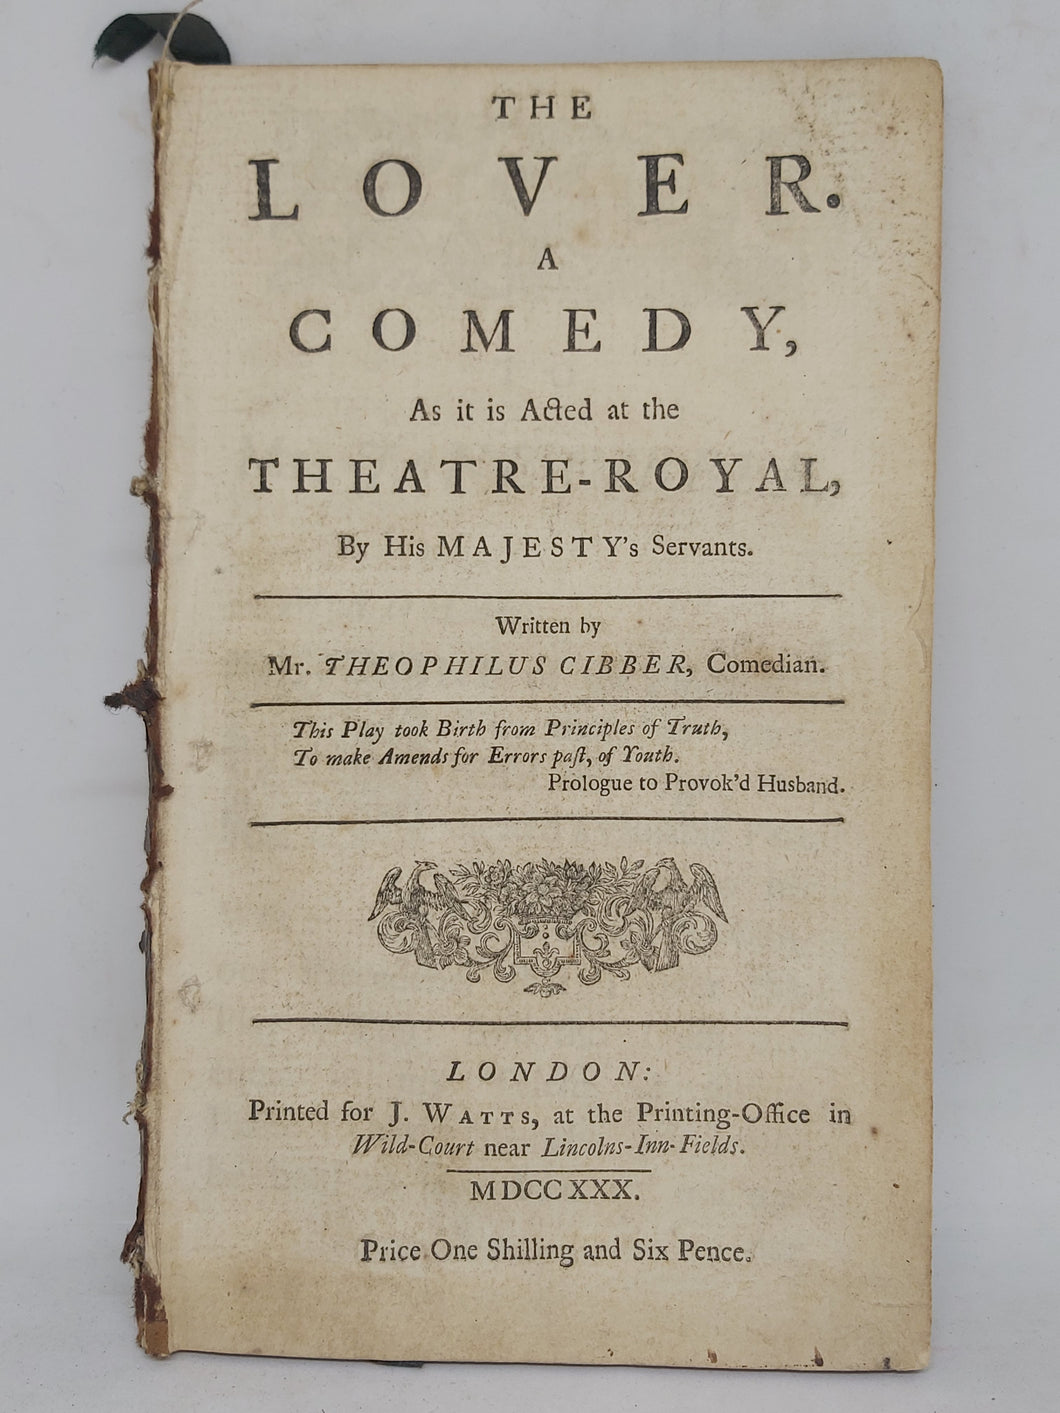 The lover. A Comedy: as it is acted at the Theatre-Royal, 1730